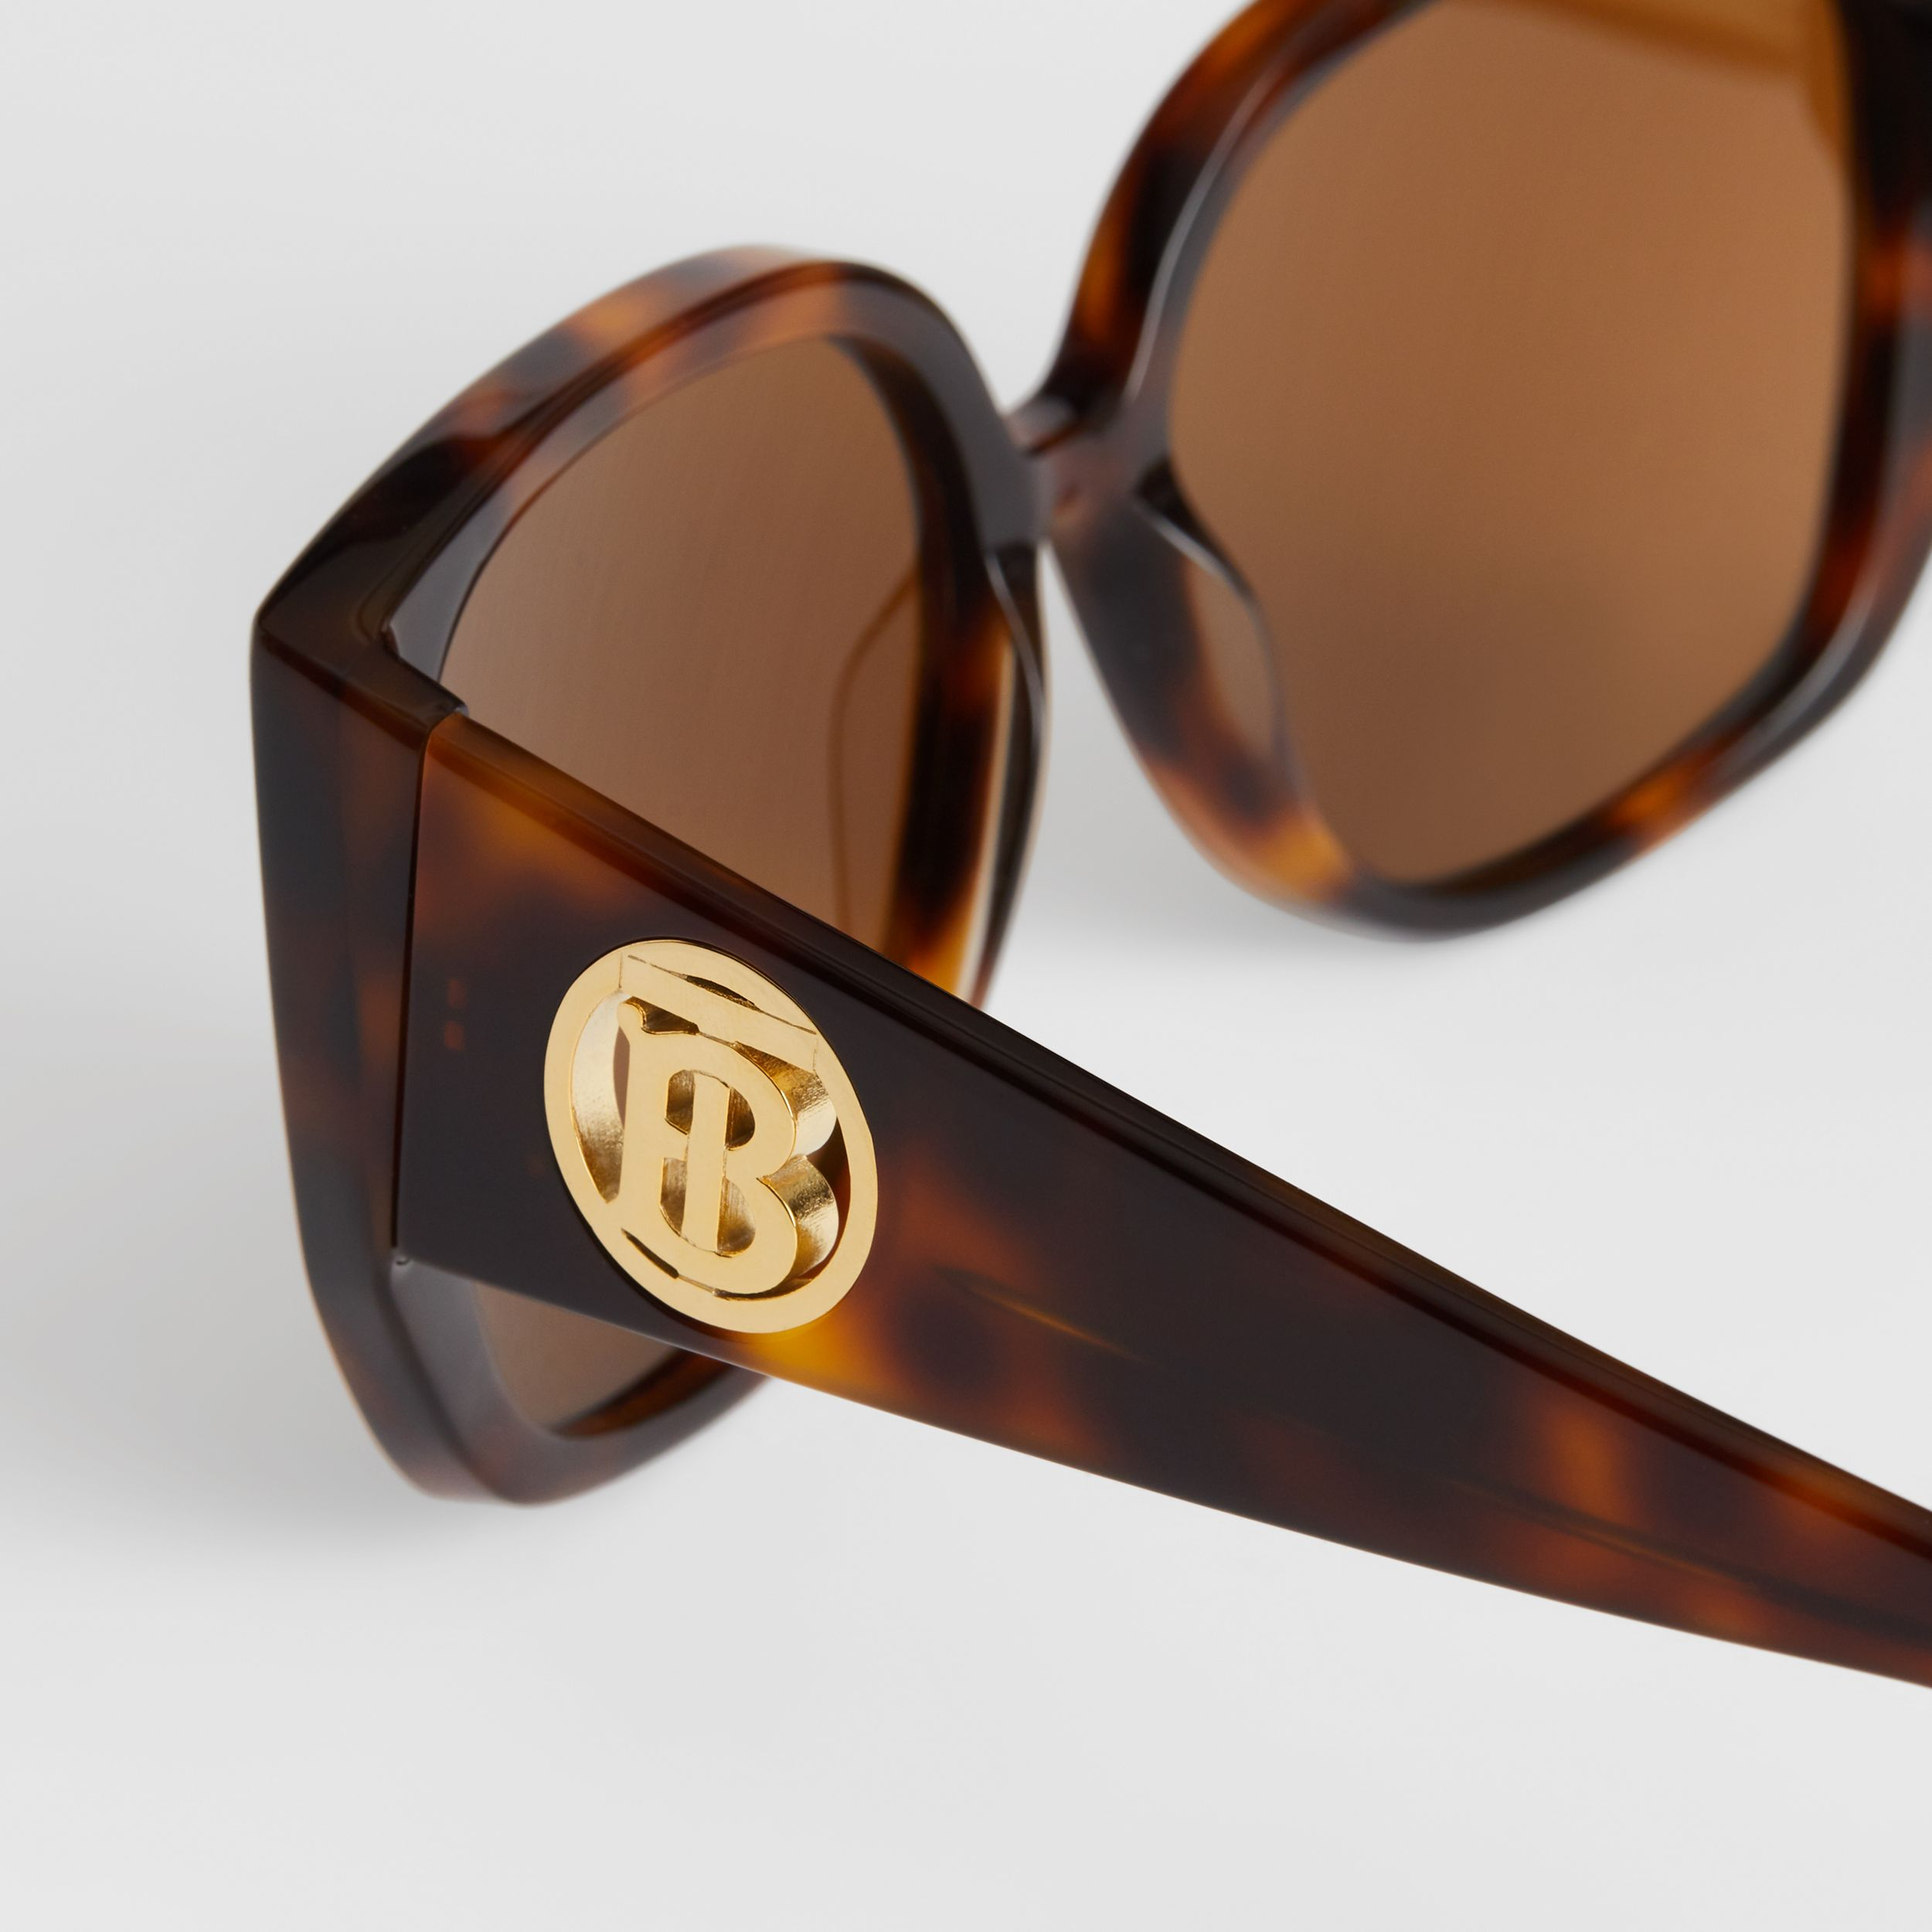 Oversized Butterfly Frame Sunglasses in Tortoiseshell - Women | Burberry United States - 2